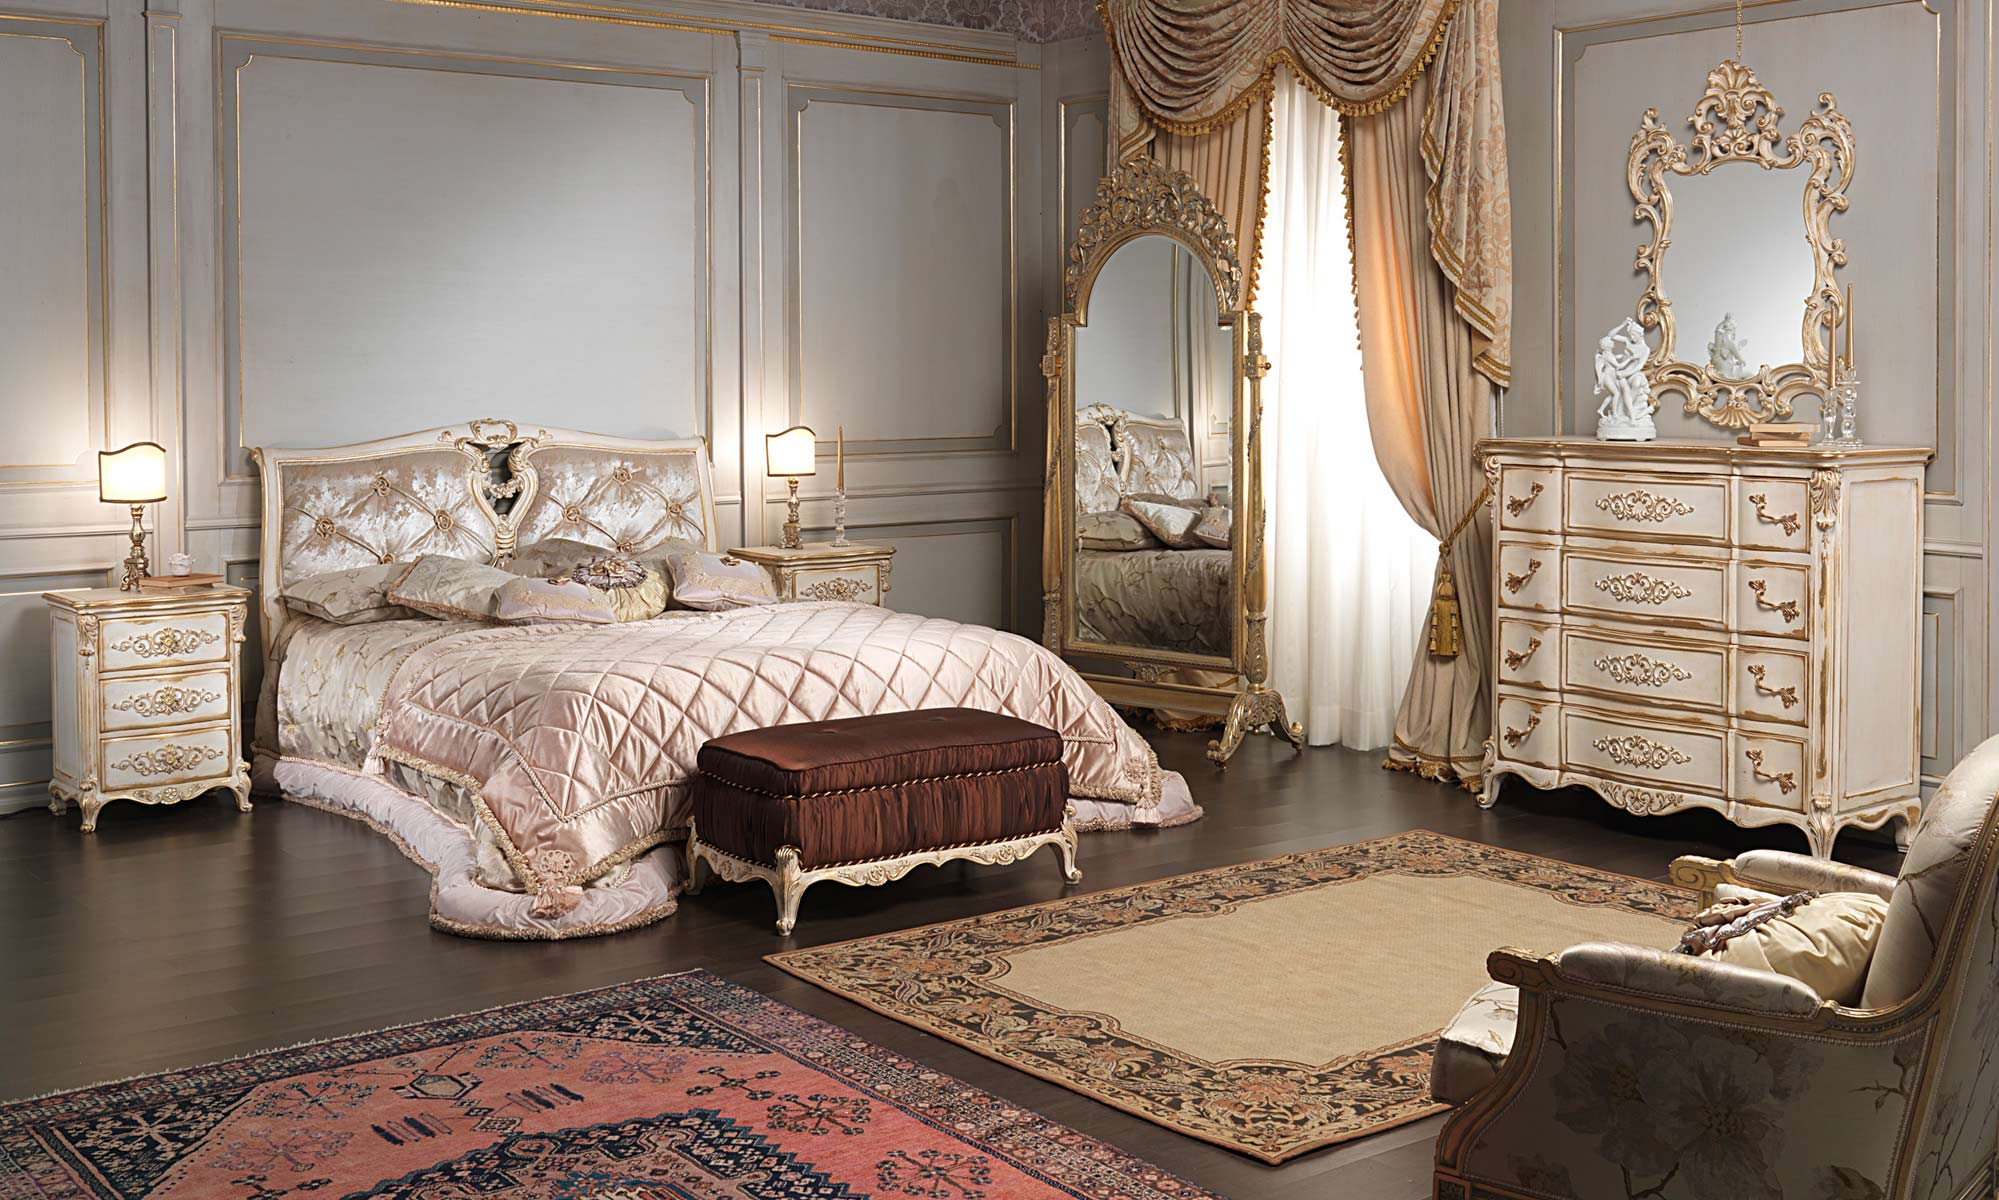 Classic Louis XVI bedroom, bed, padded bench, chest of drawers ...